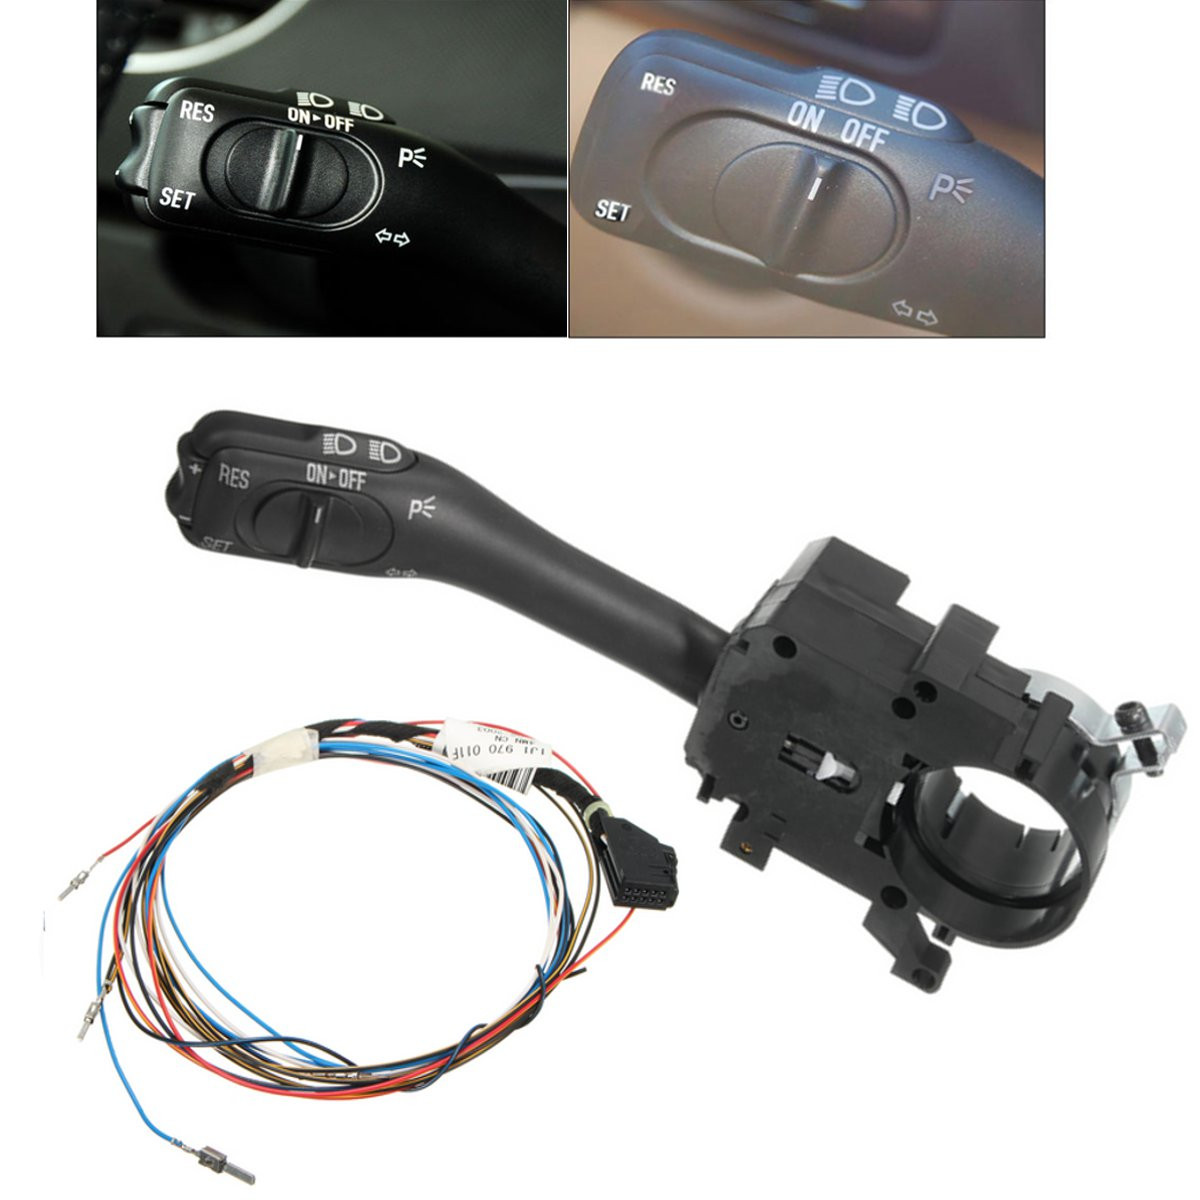 Bora System cruise system indicator stalk switch harness wire for vw golf gti bora mk4 18g 953 513